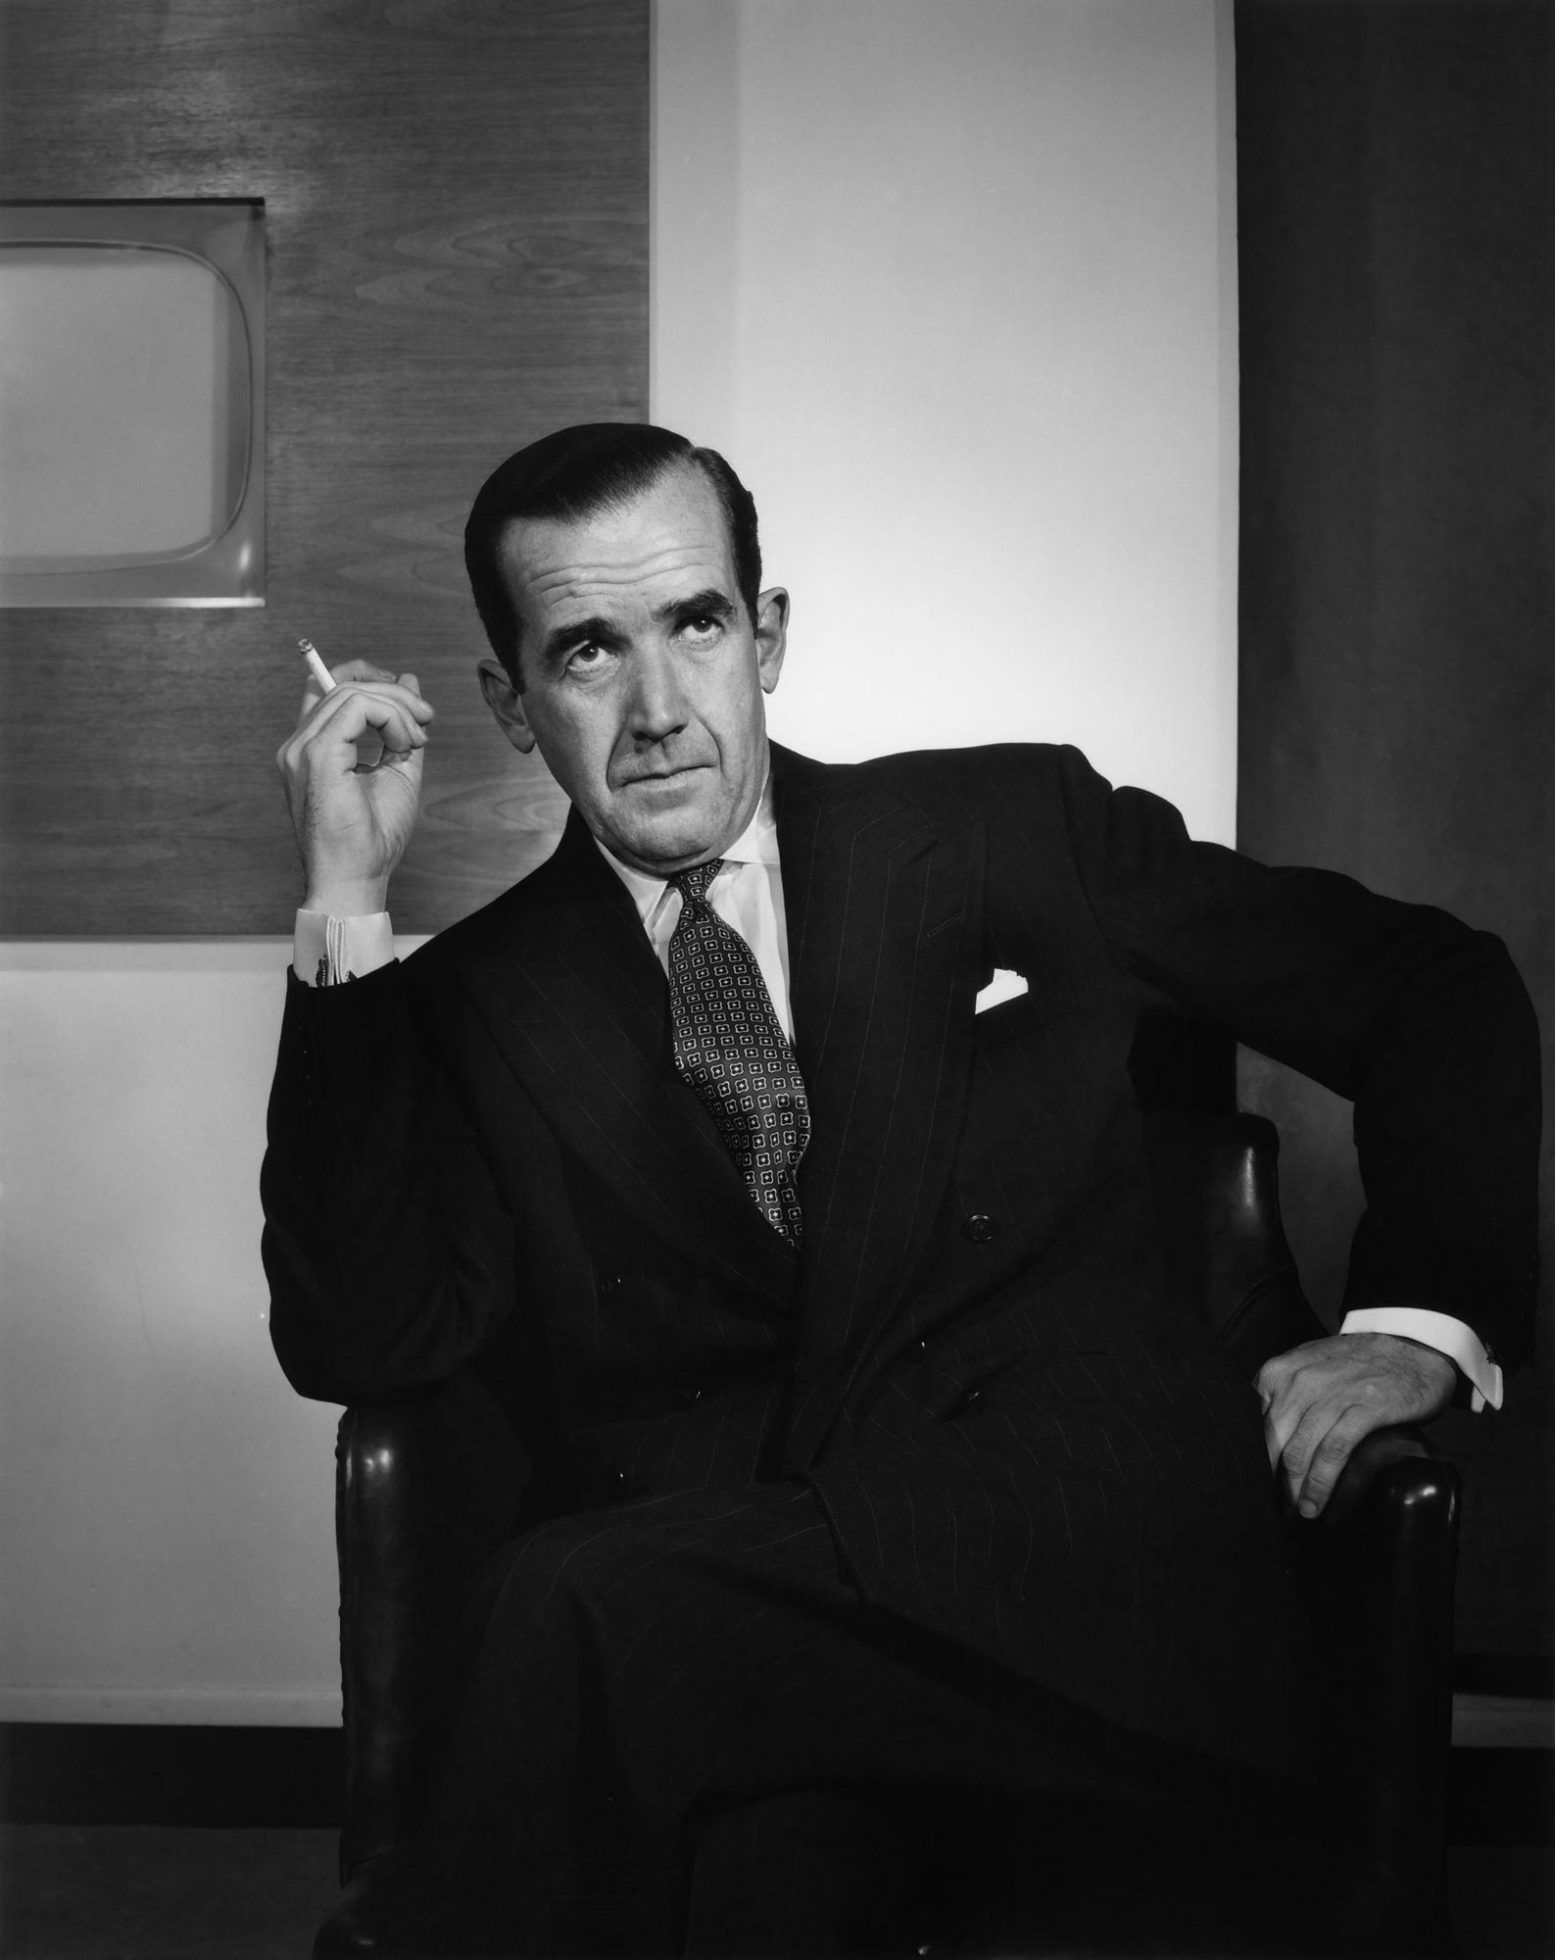 Edward R. Murrow 1959 Yousuf Karsh (With images